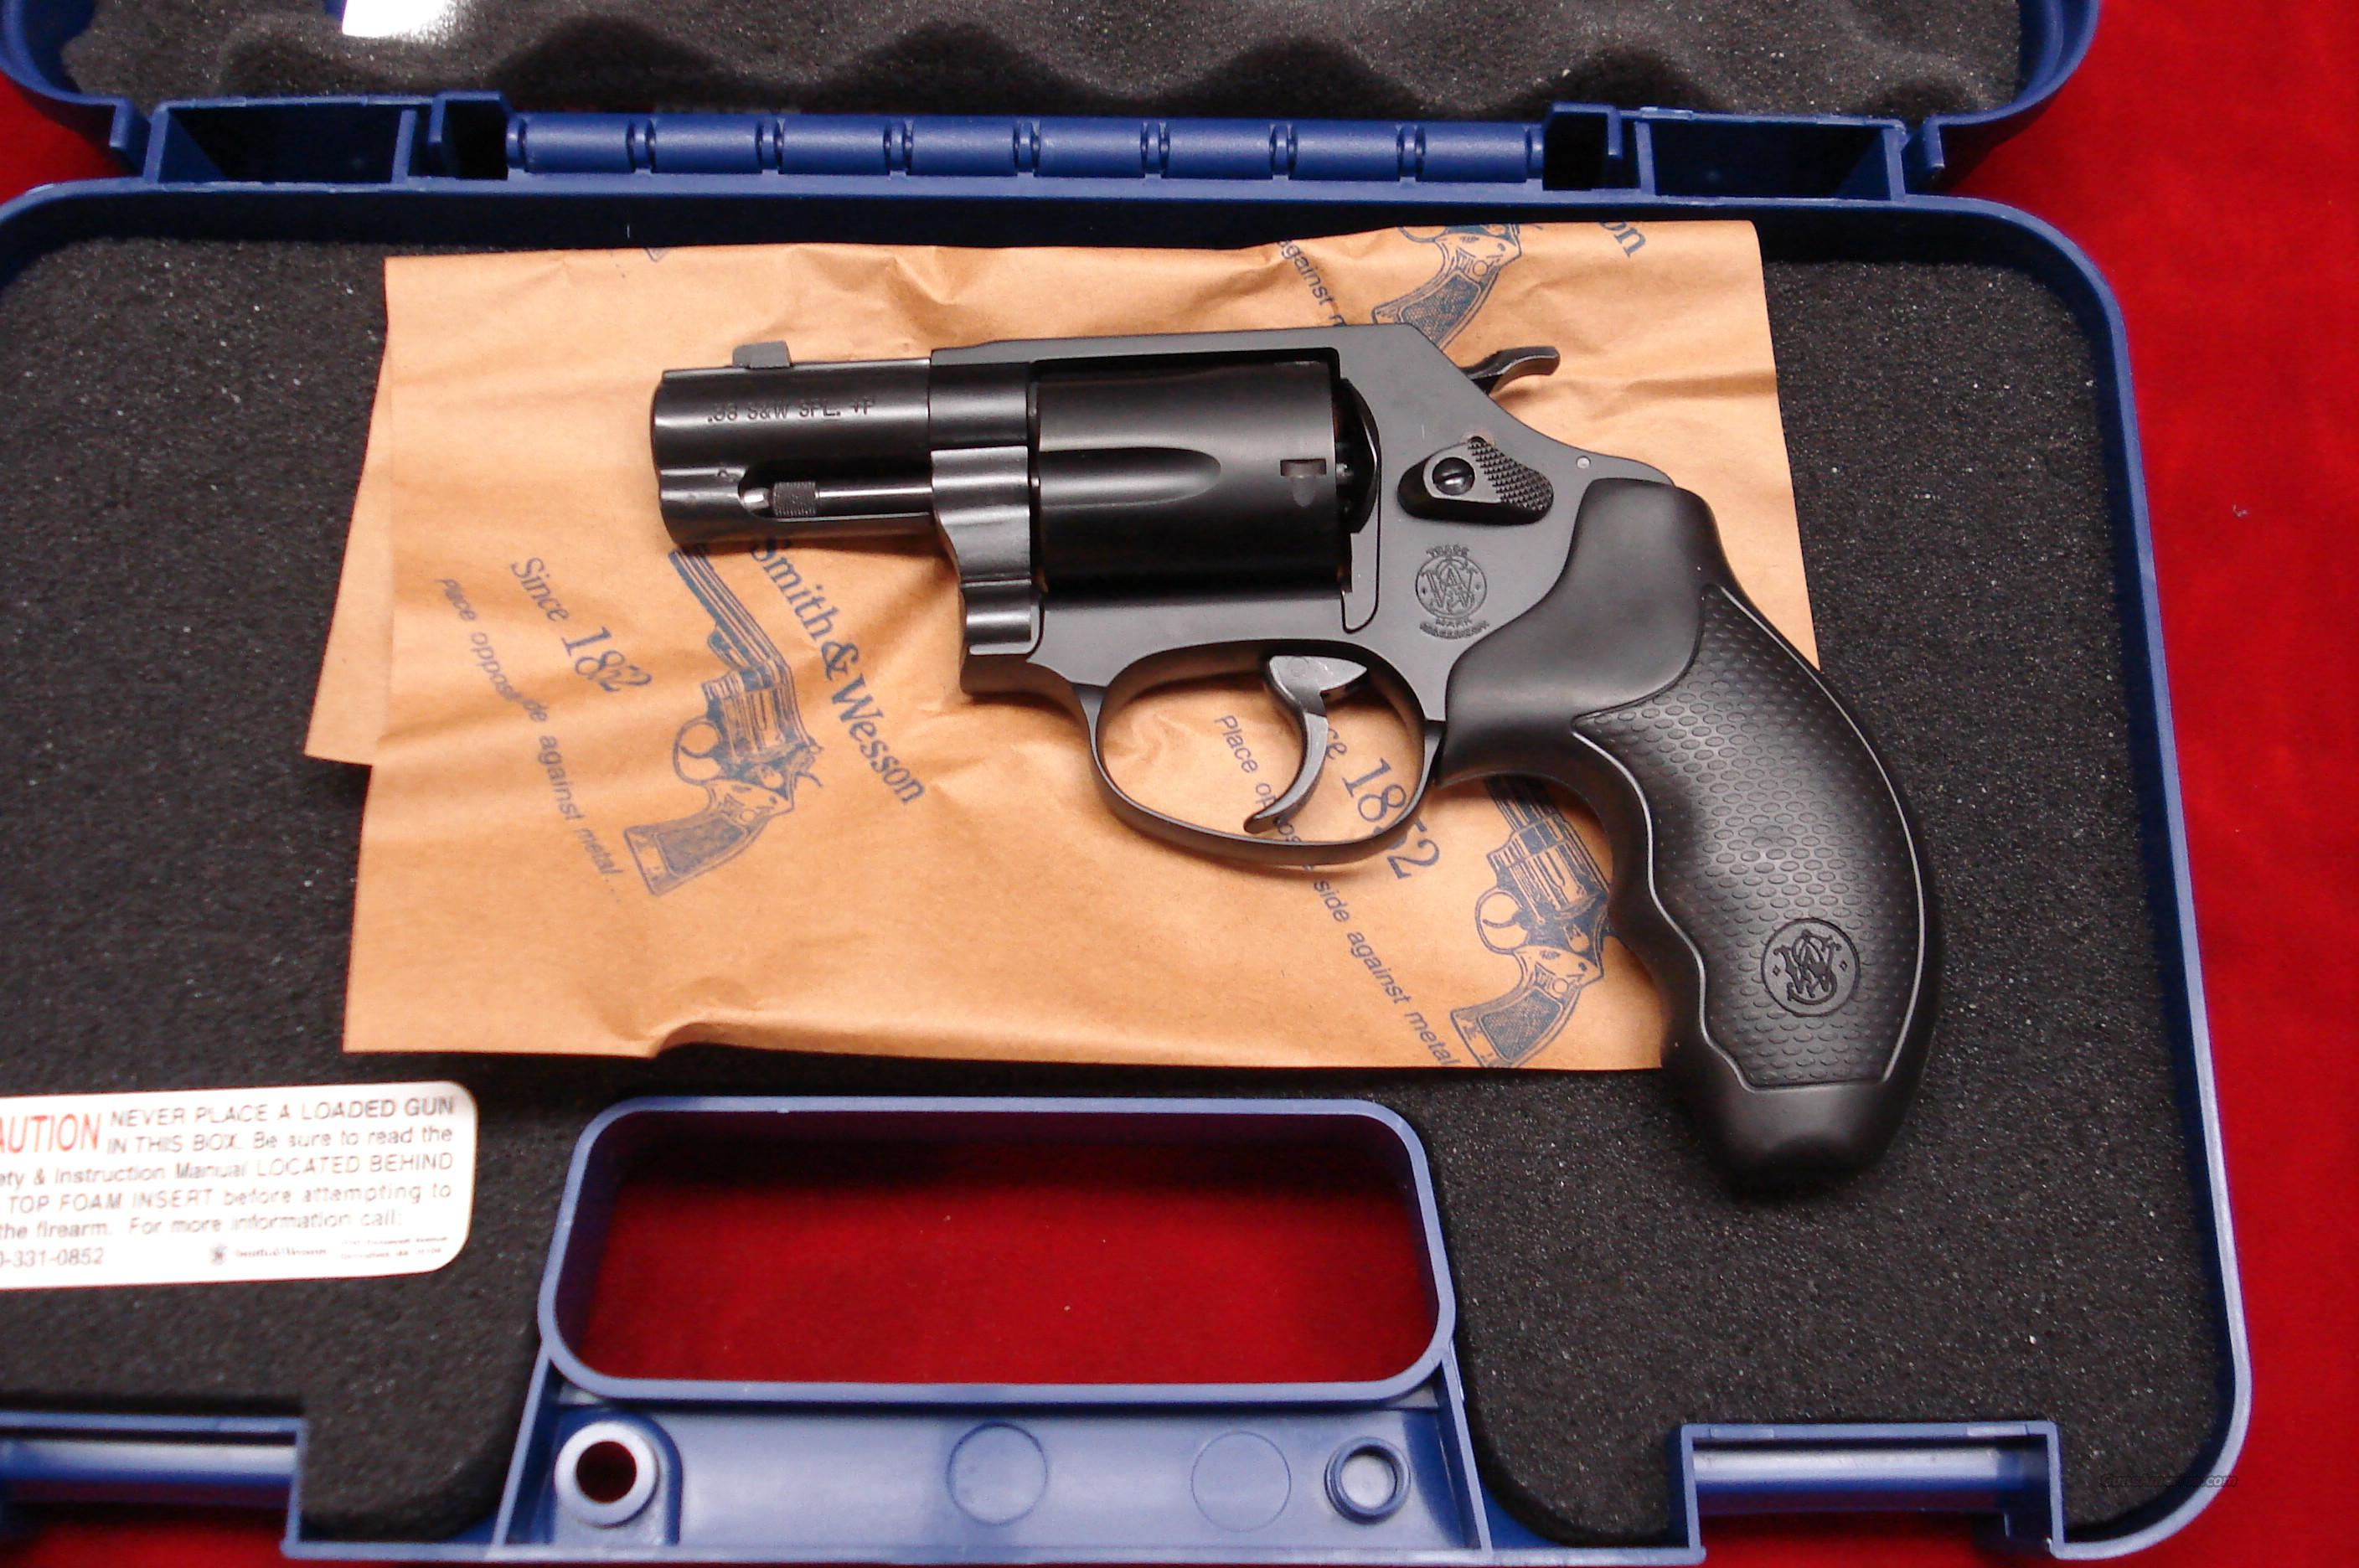 "SMITH AND WESSON MODEL 637 PRO POWER PORT 2 1/8"" 38 SPL. NEW   Guns > Pistols > Smith & Wesson Revolvers > Pocket Pistols"